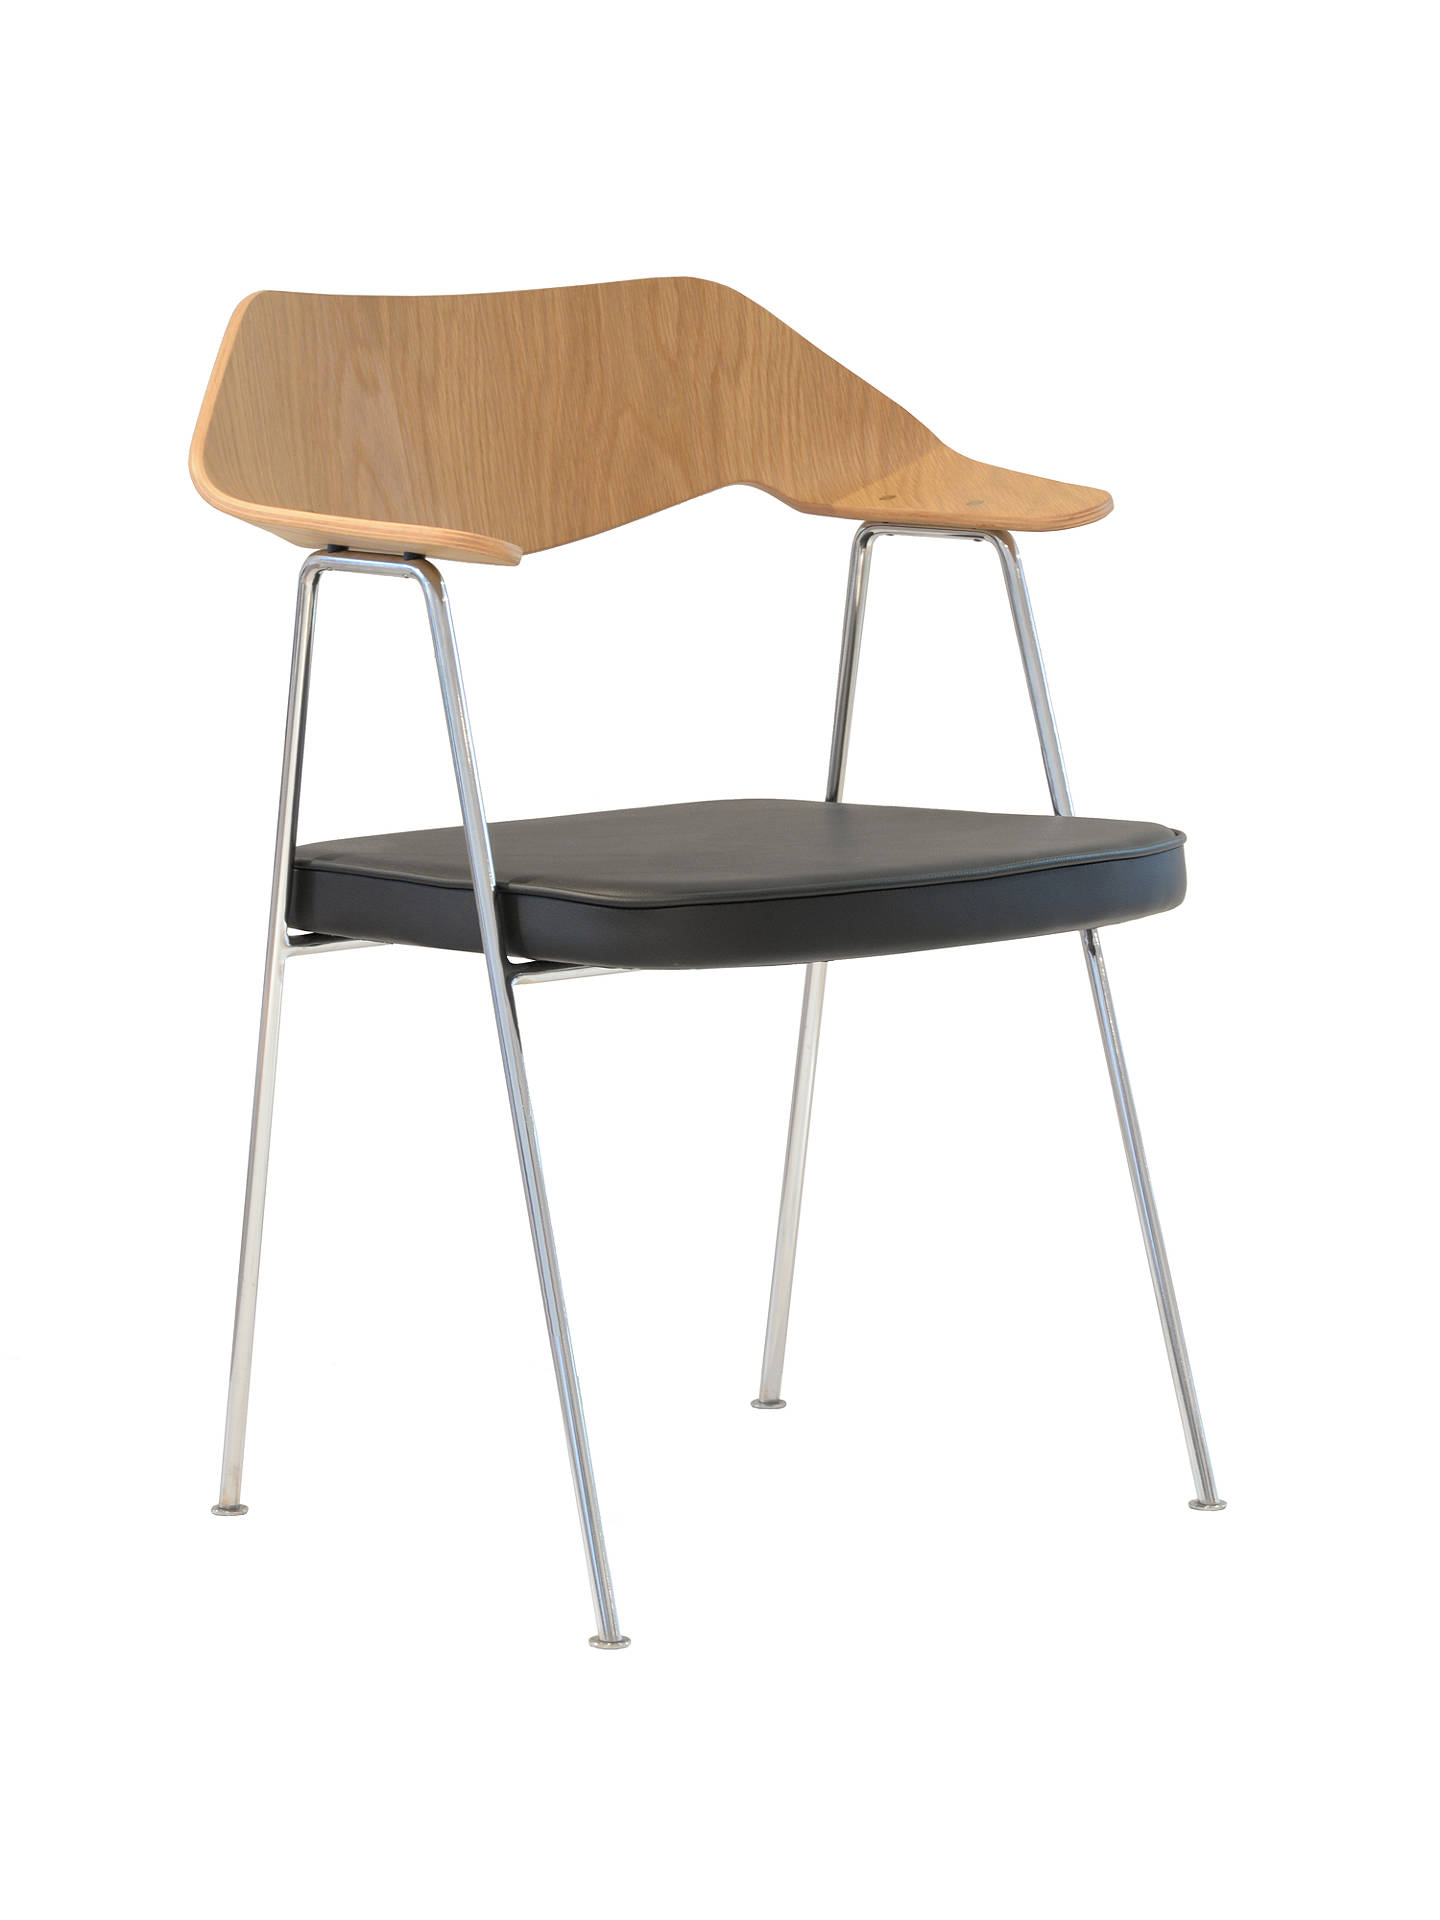 BuyCase Robin Day 675 Chair, Oak and Chrome Frame Online at johnlewis.com